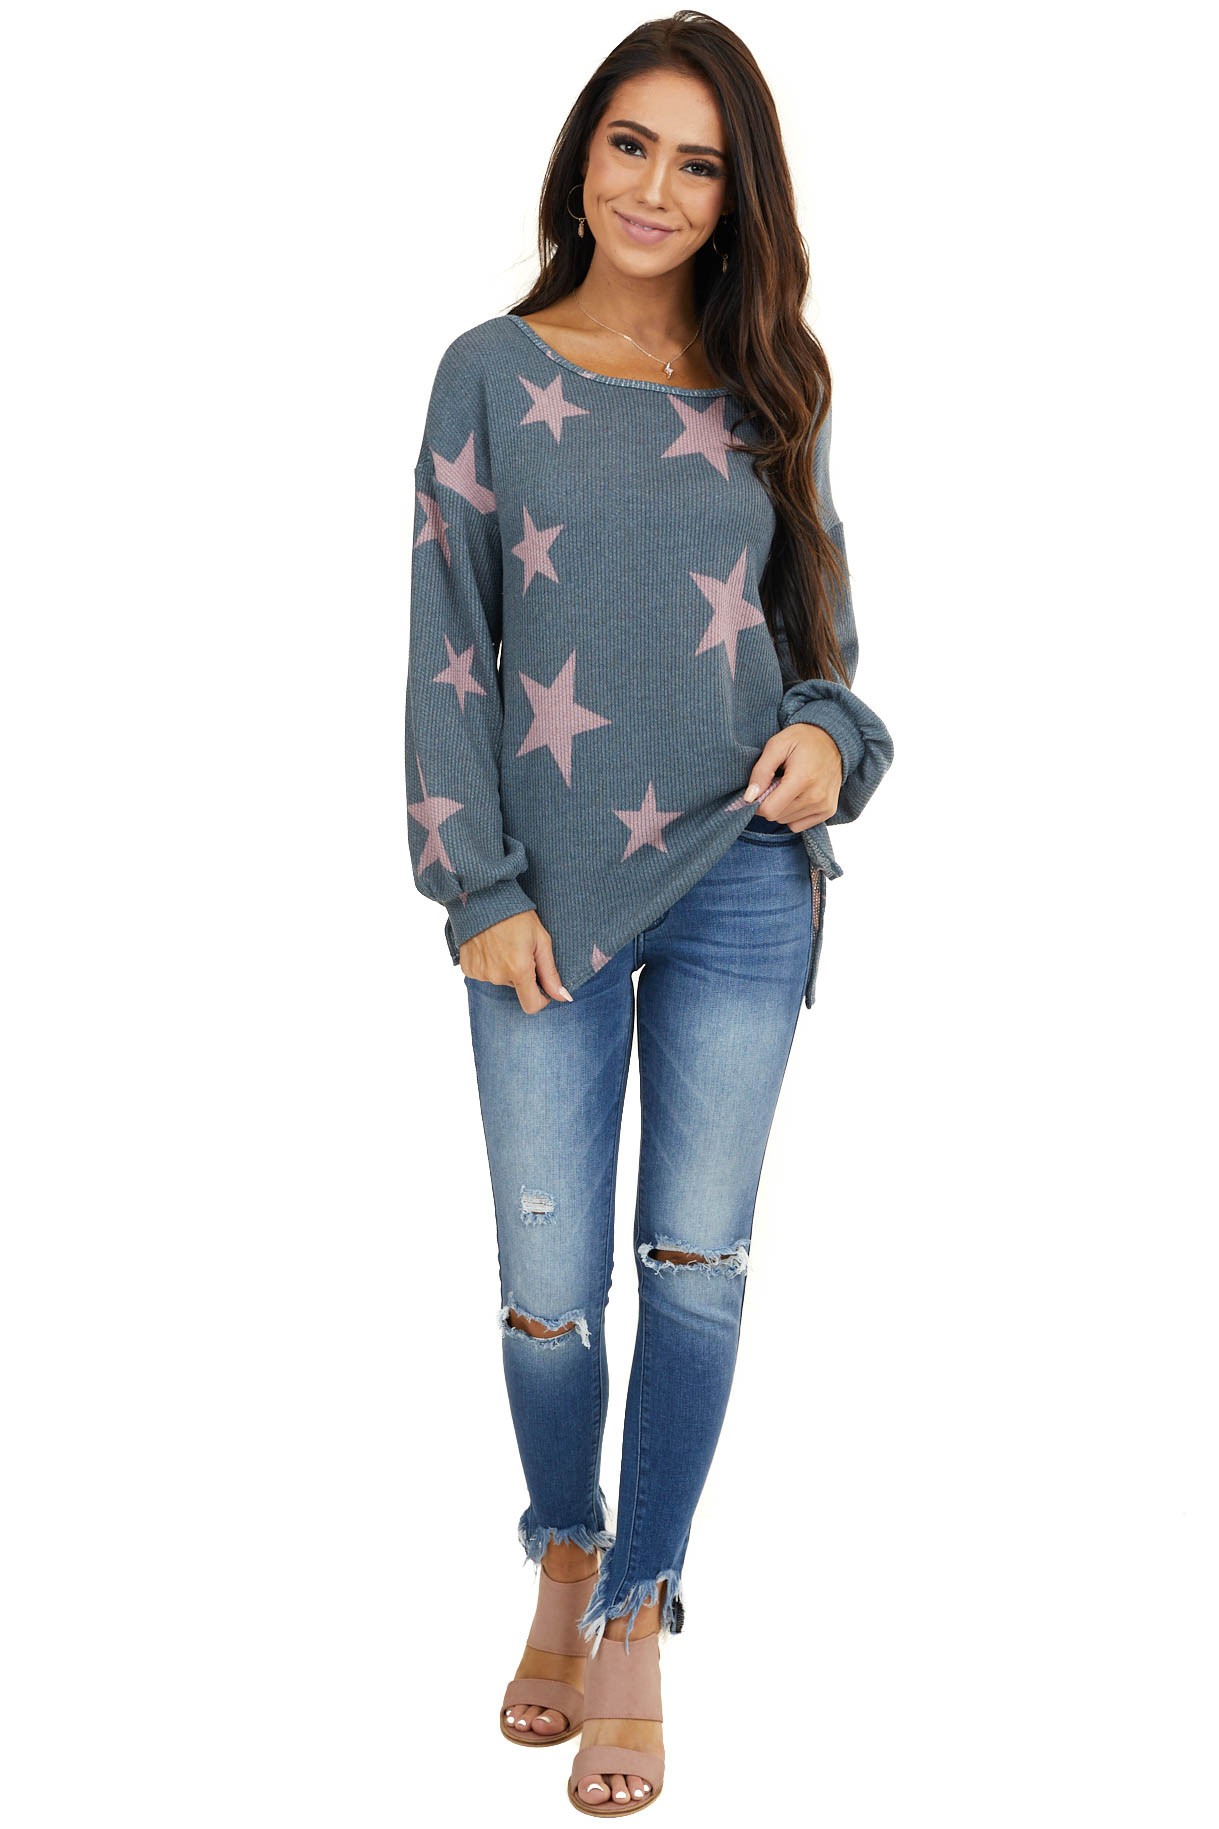 Stormy Grey Star Print Textured Top with Criss Cross Back